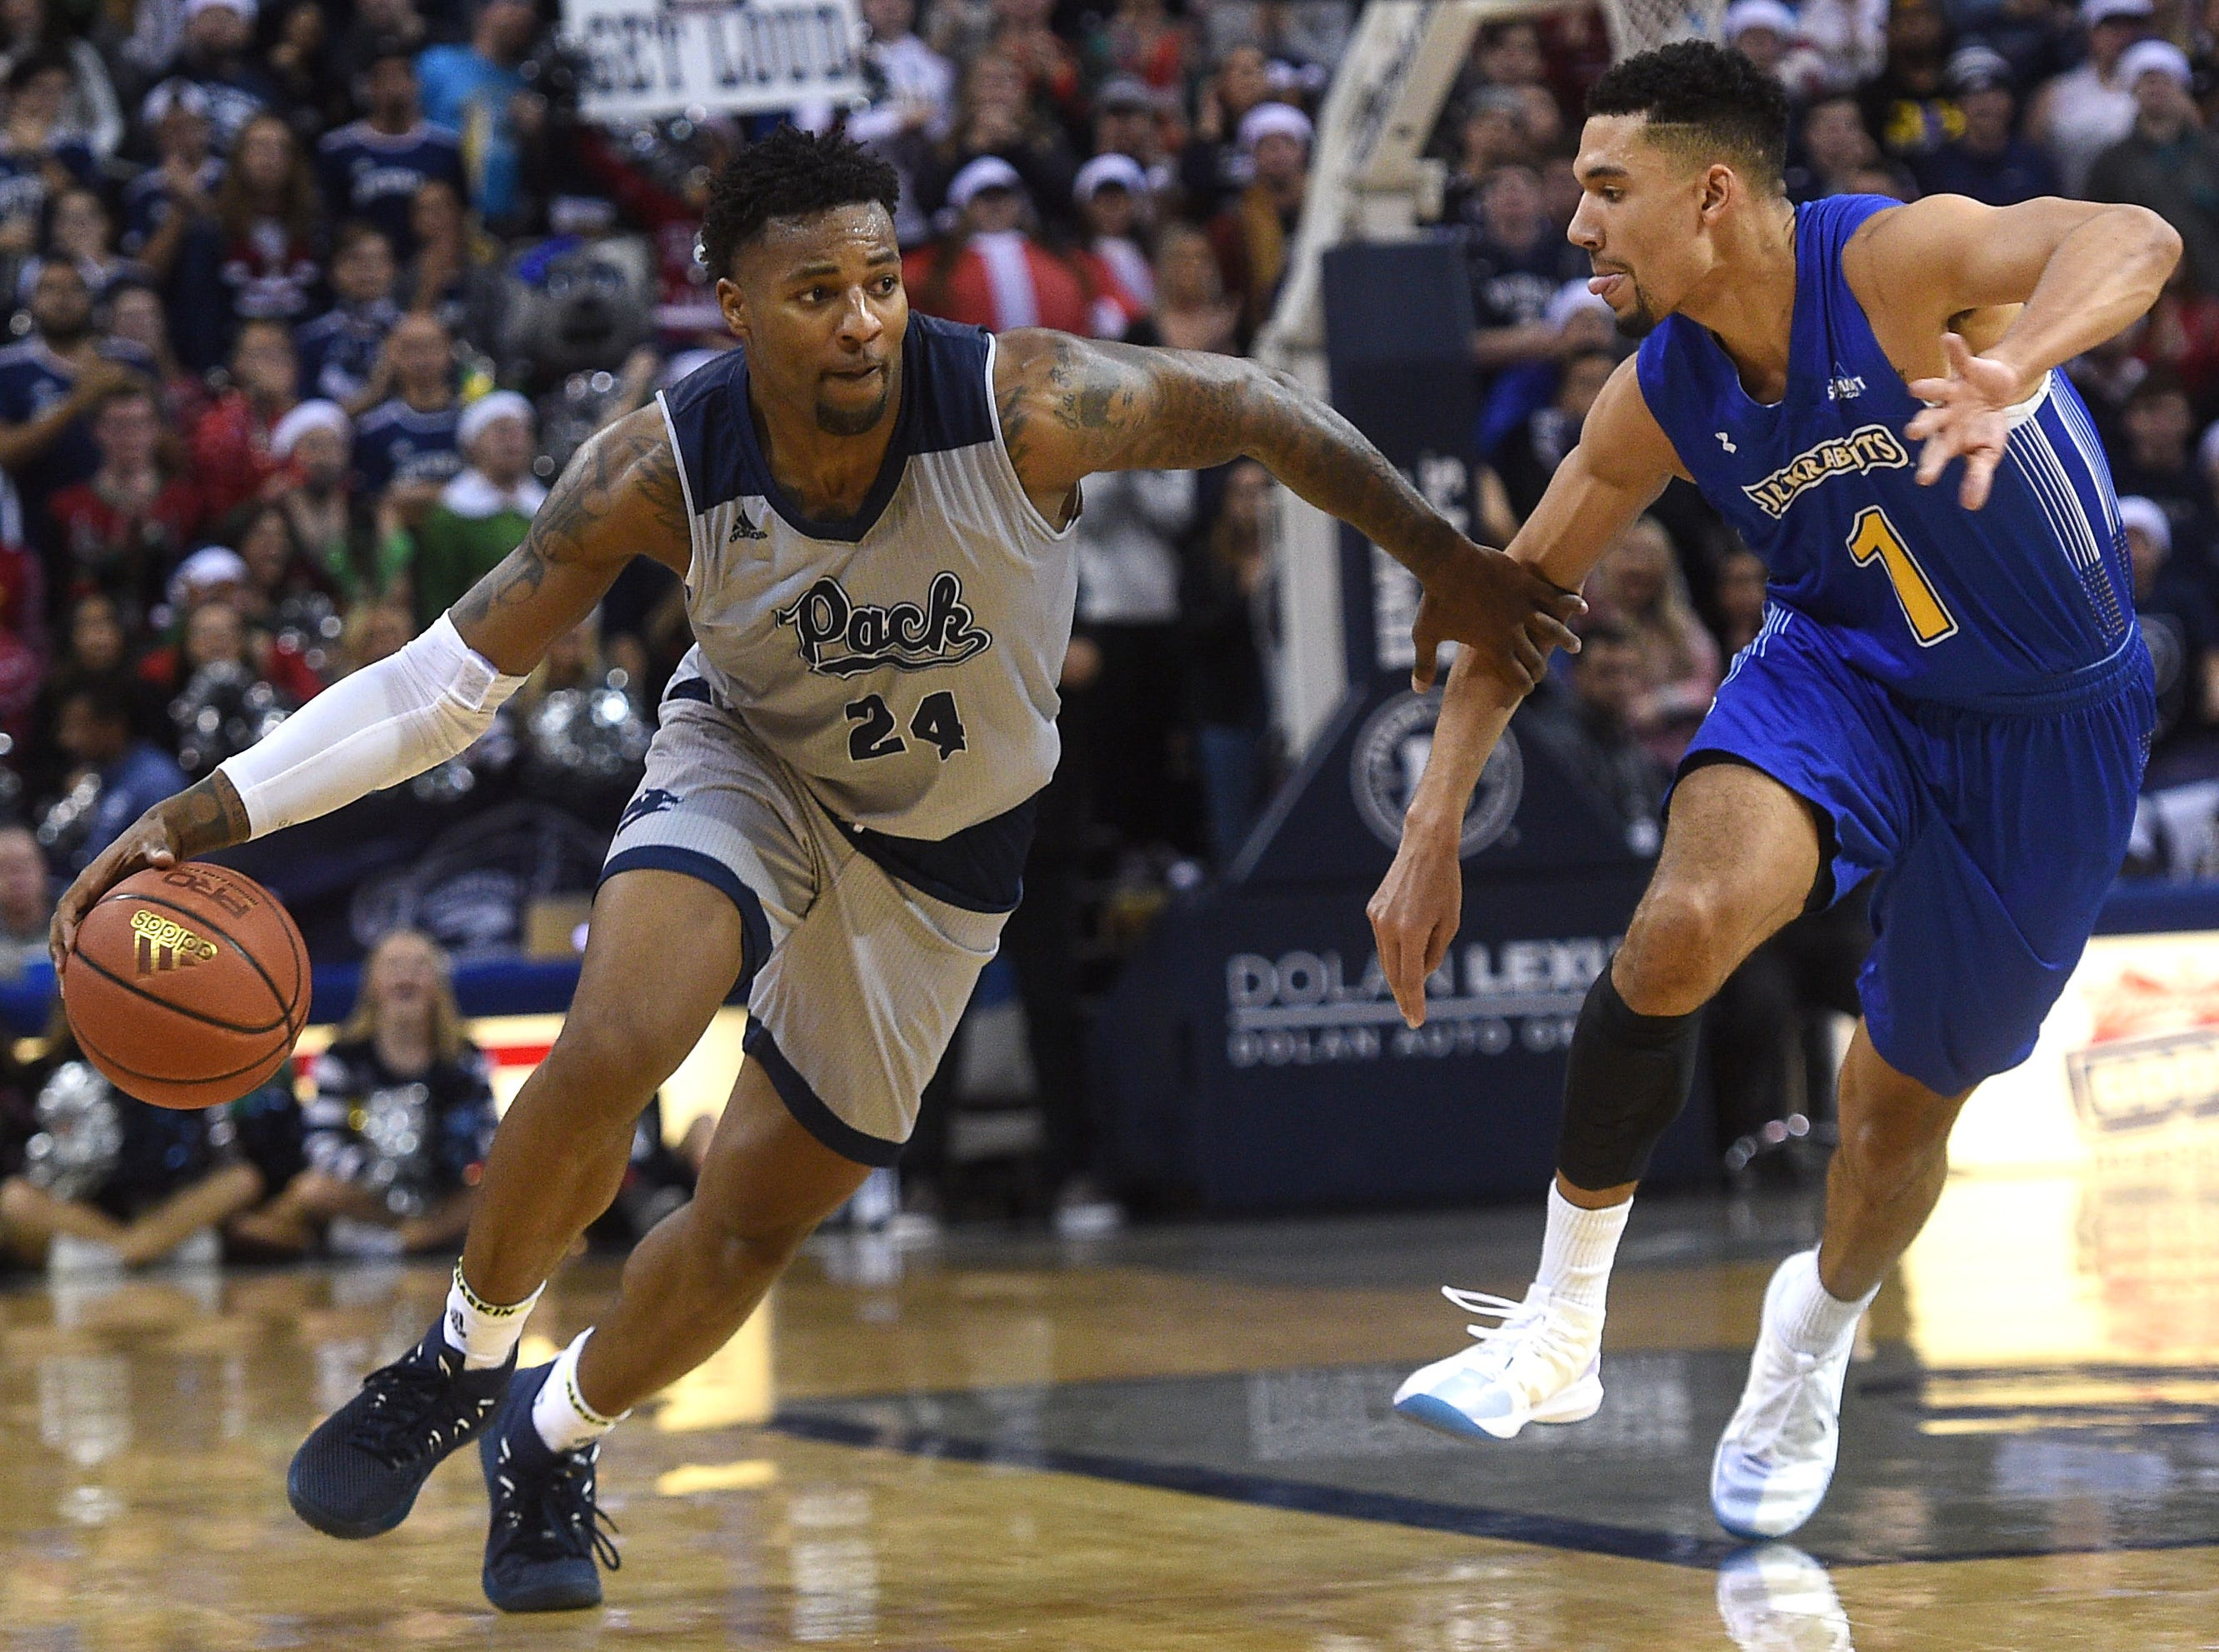 Nevada's Jordan Caroline brings the ball up court while taking on South Dakota State during their basketball game at Lawlor Events Center in Reno on Dec. 15, 2018.